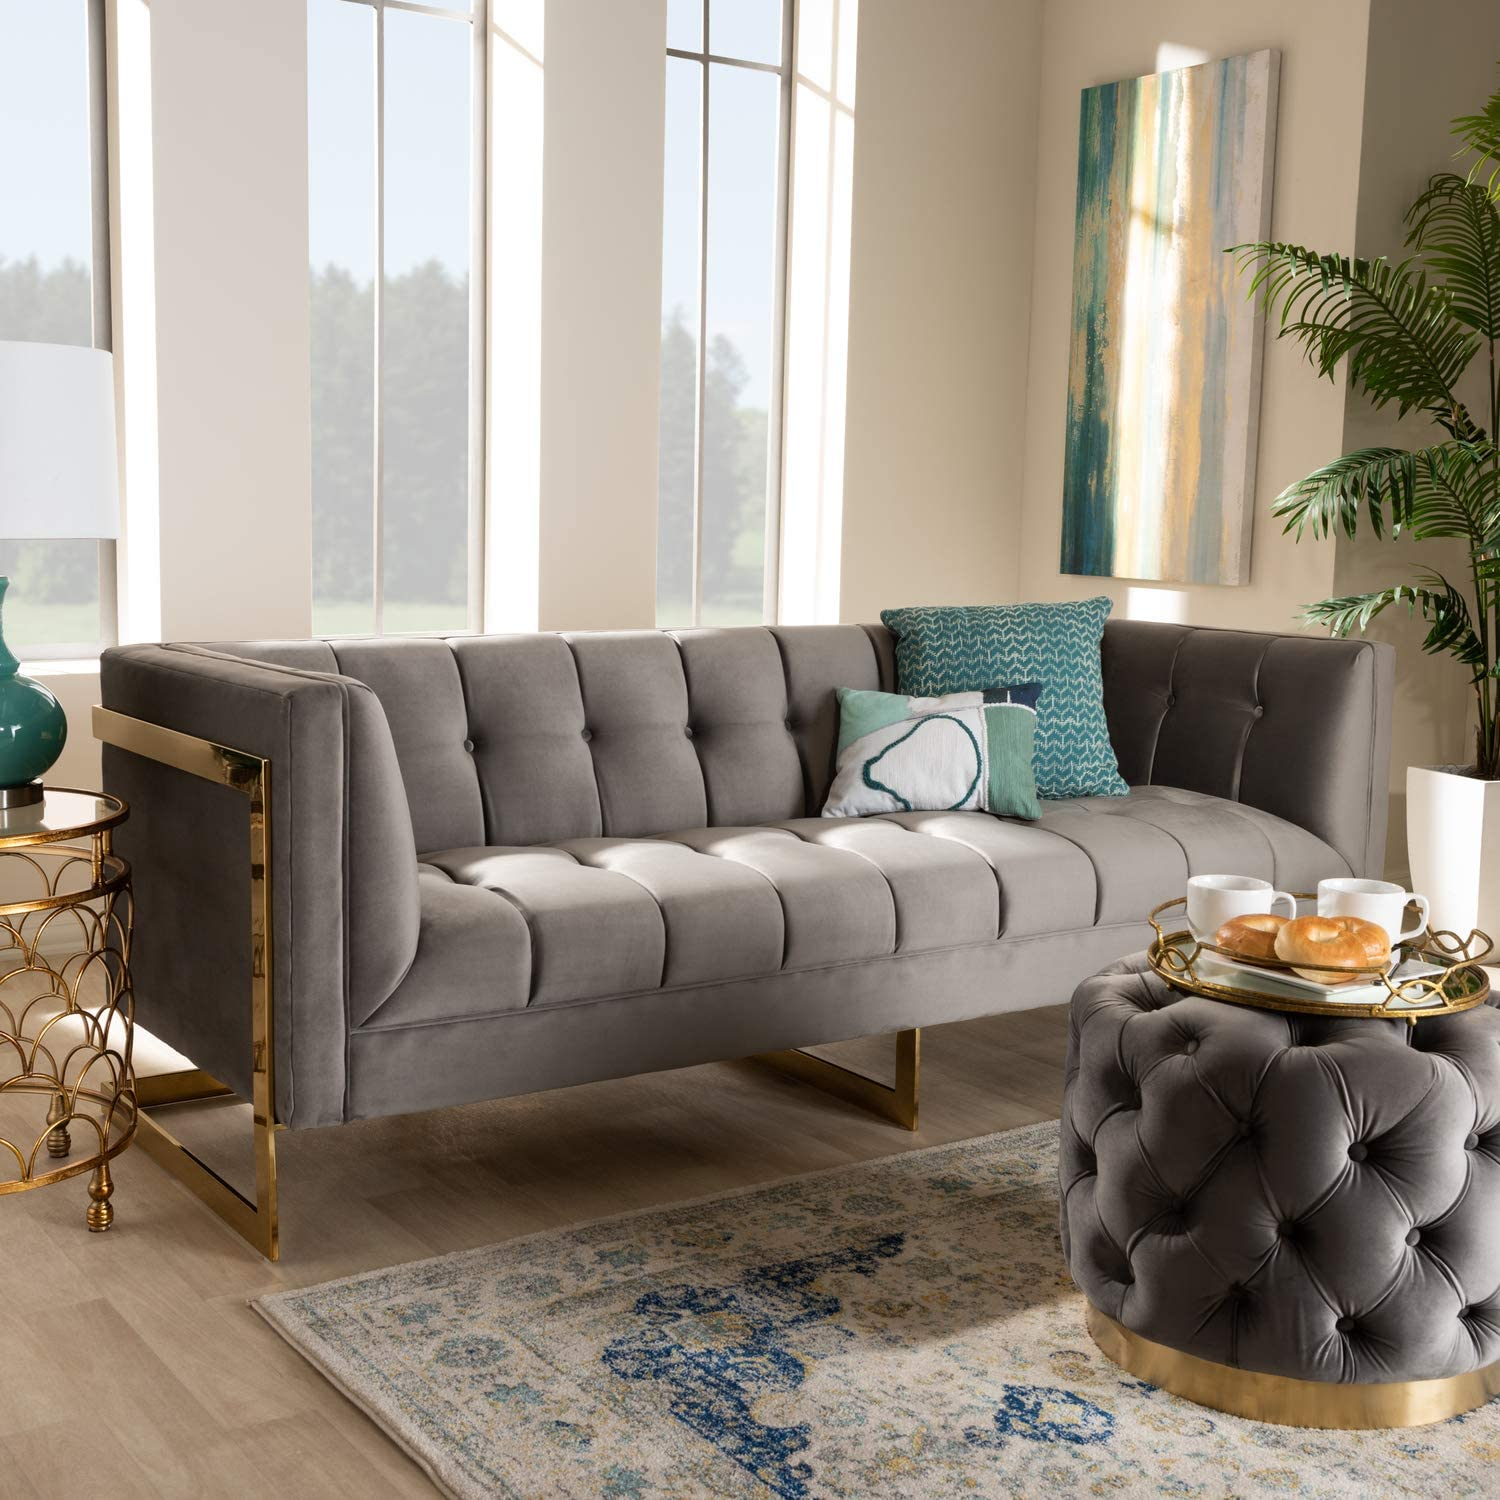 Baxton Popular brand in the world Studio Ambra Glam and Velvet Very popular Grey Upholstered Fabric Luxe